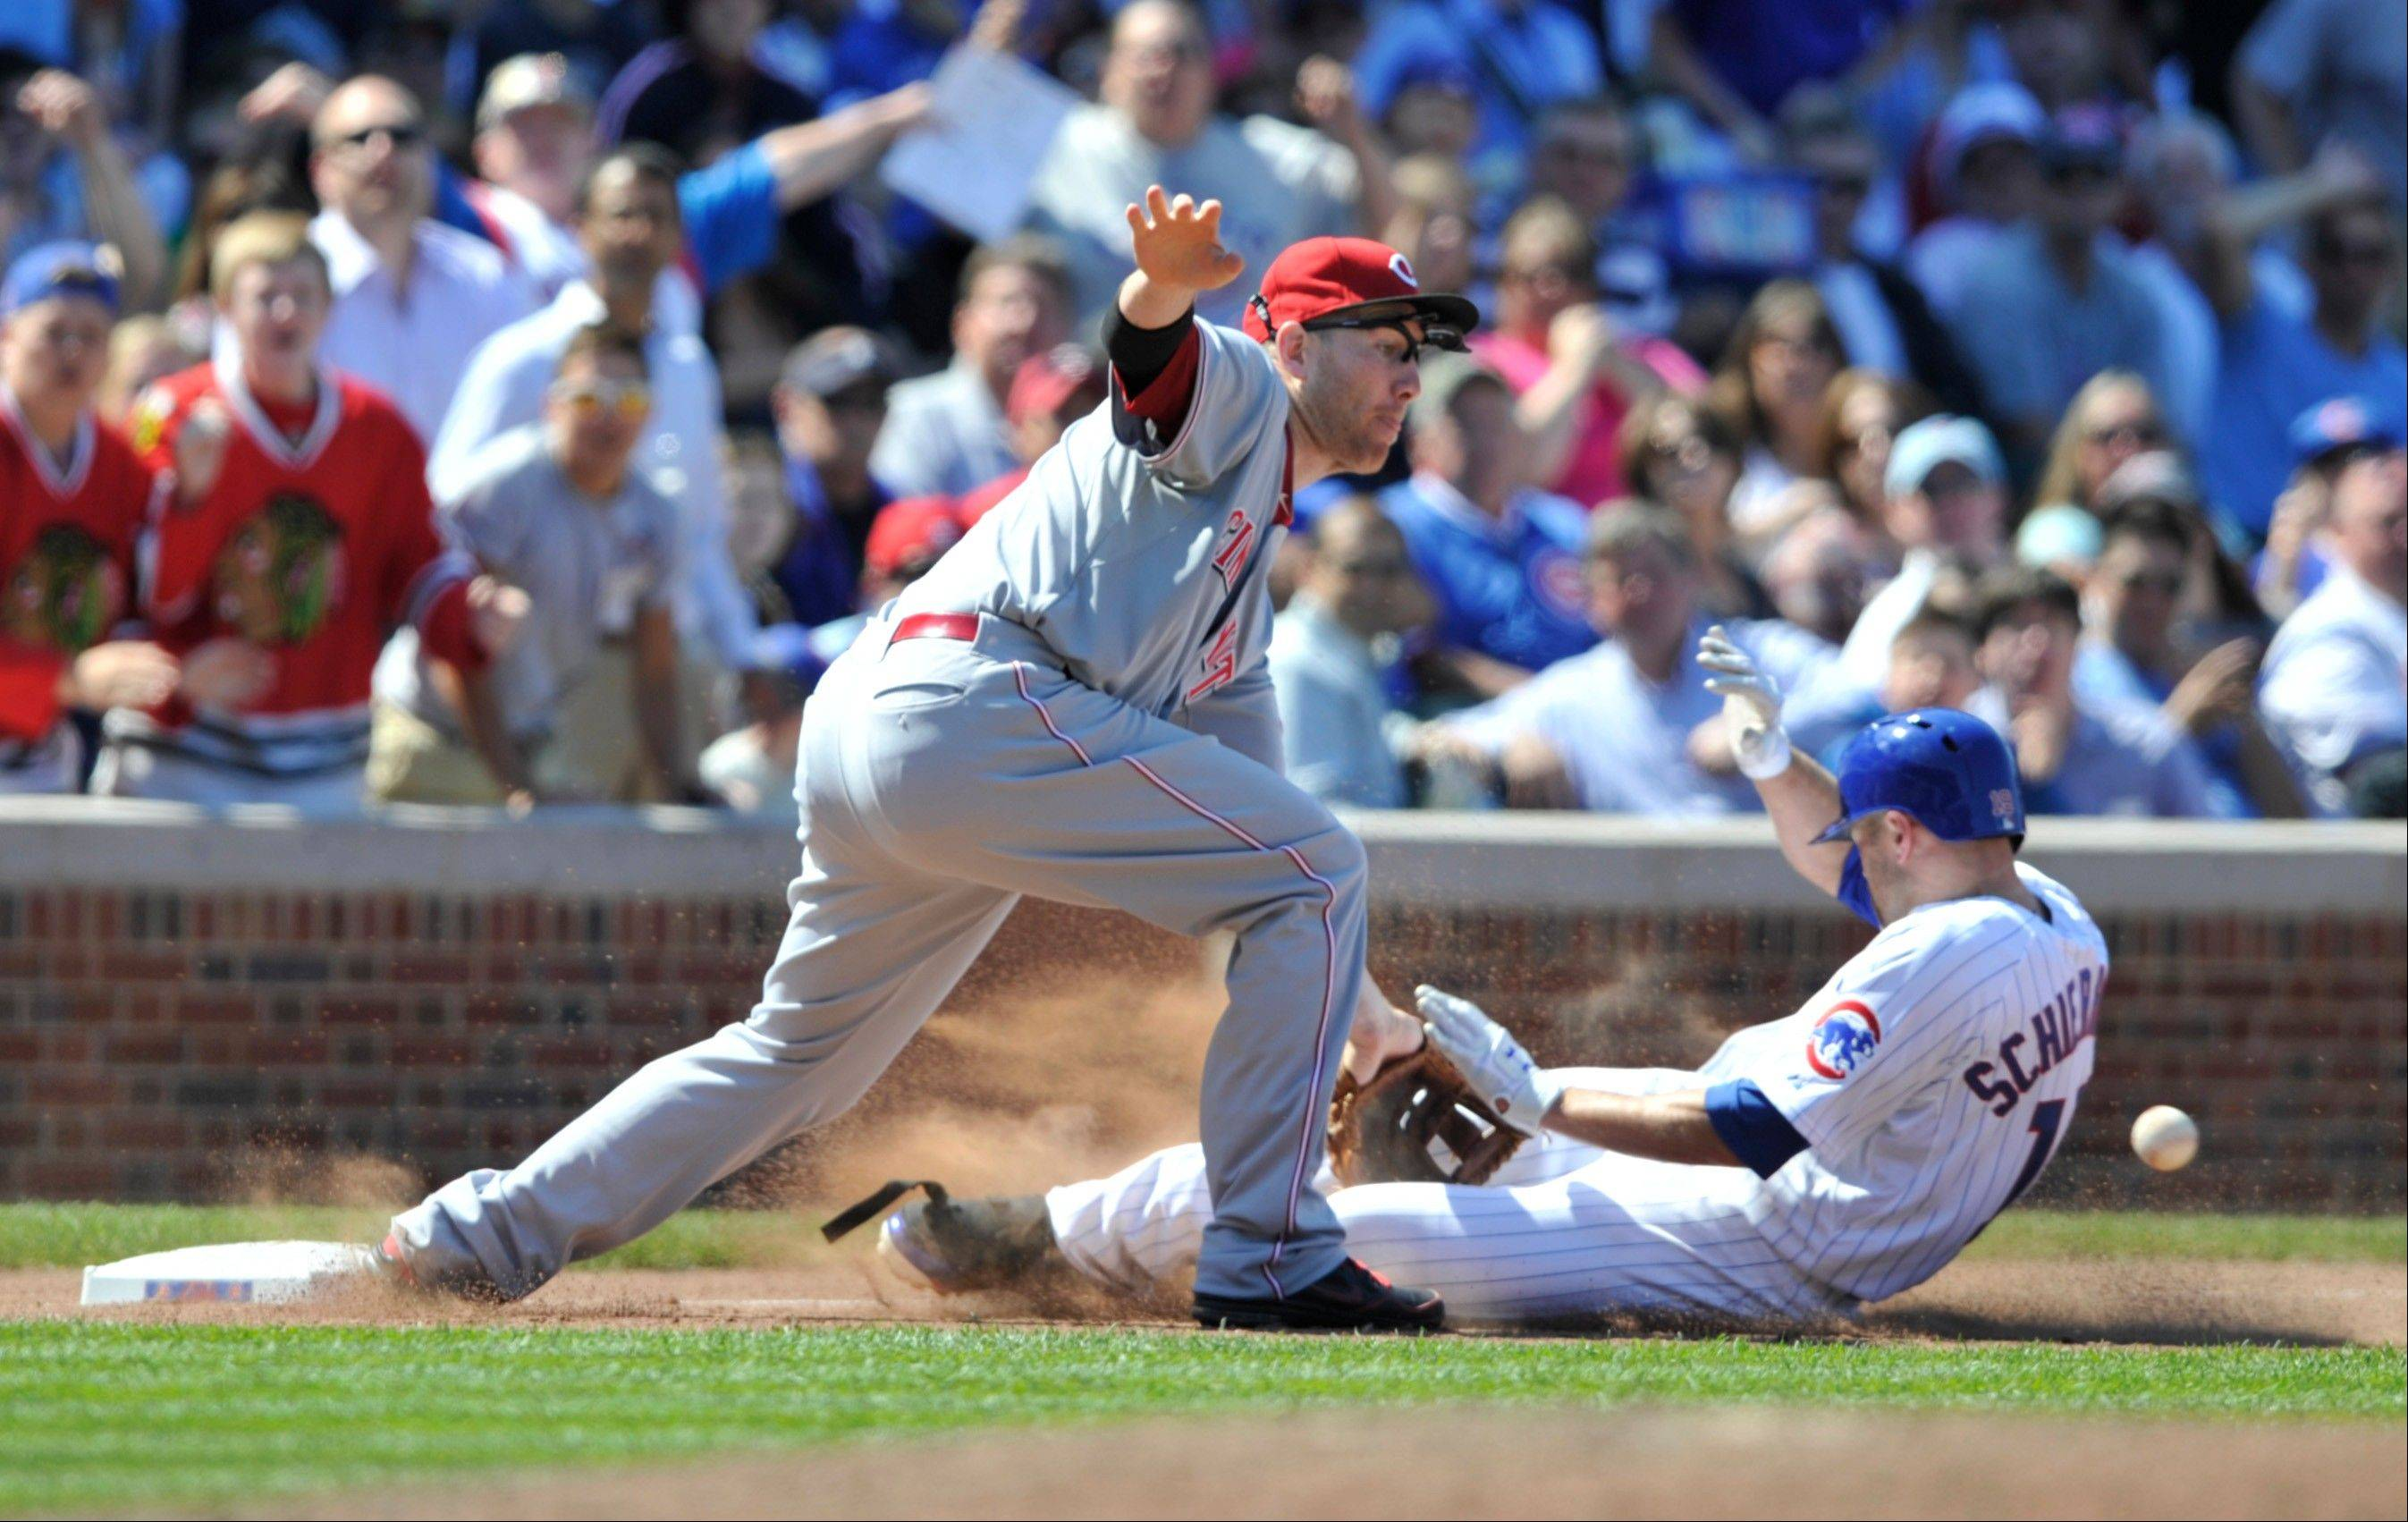 The Cubs' Nate Schierholtz, right, slides safely into third as Cincinnati Reds' Todd Frazier waits for the ball after hitting a triple during the sixth inning of a baseball game on Thursday at Wrigley Field.